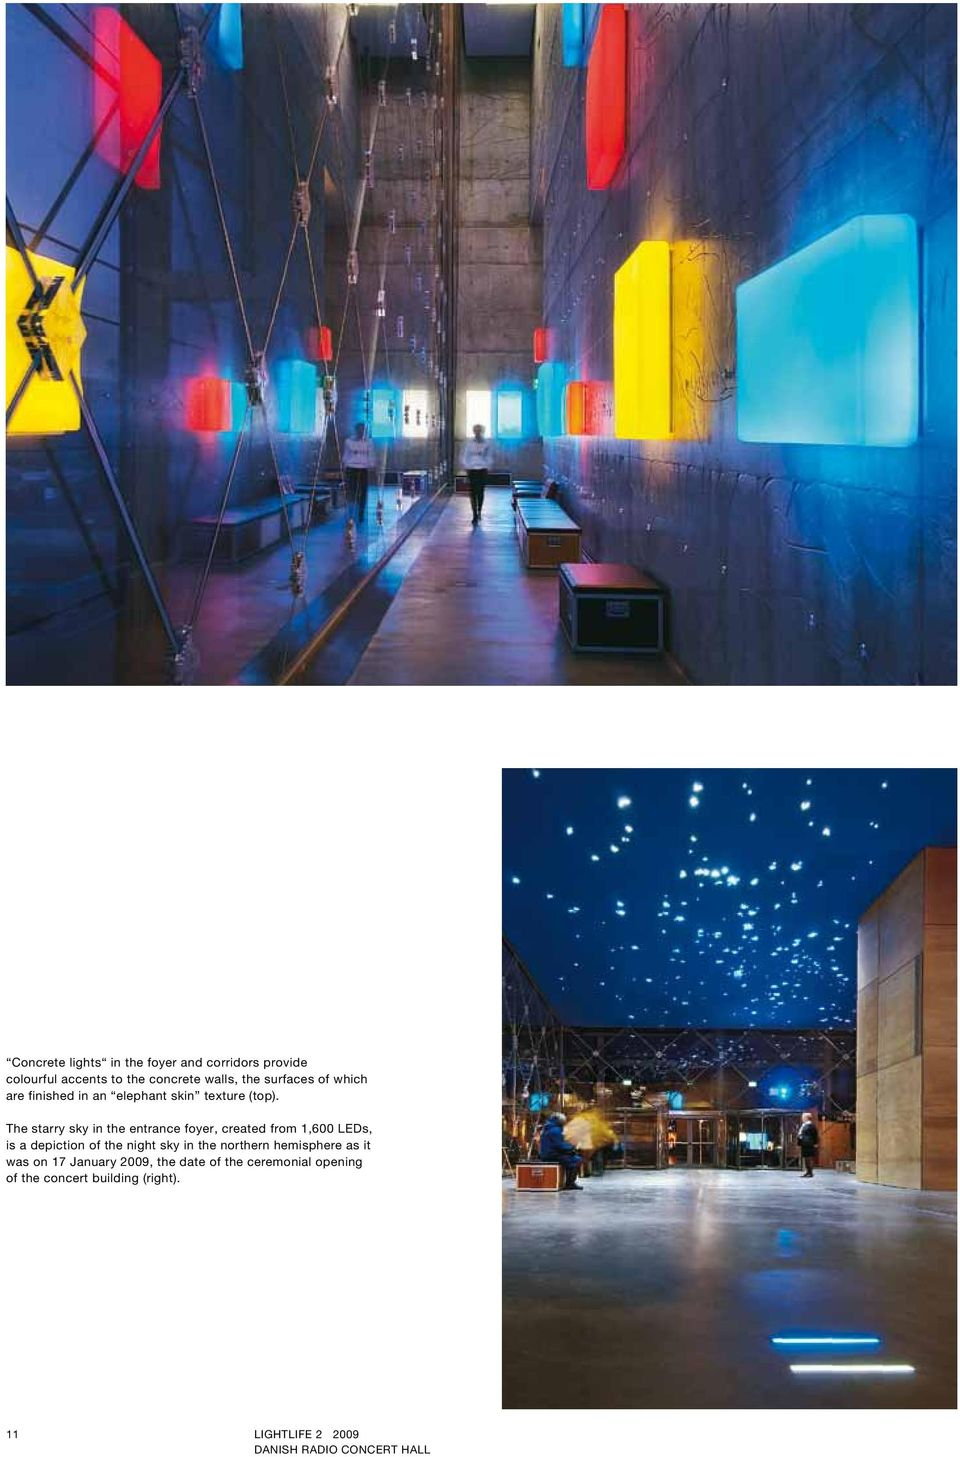 The starry sky in the entrance foyer, created from 1,600 LEDs, is a depiction of the night sky in the